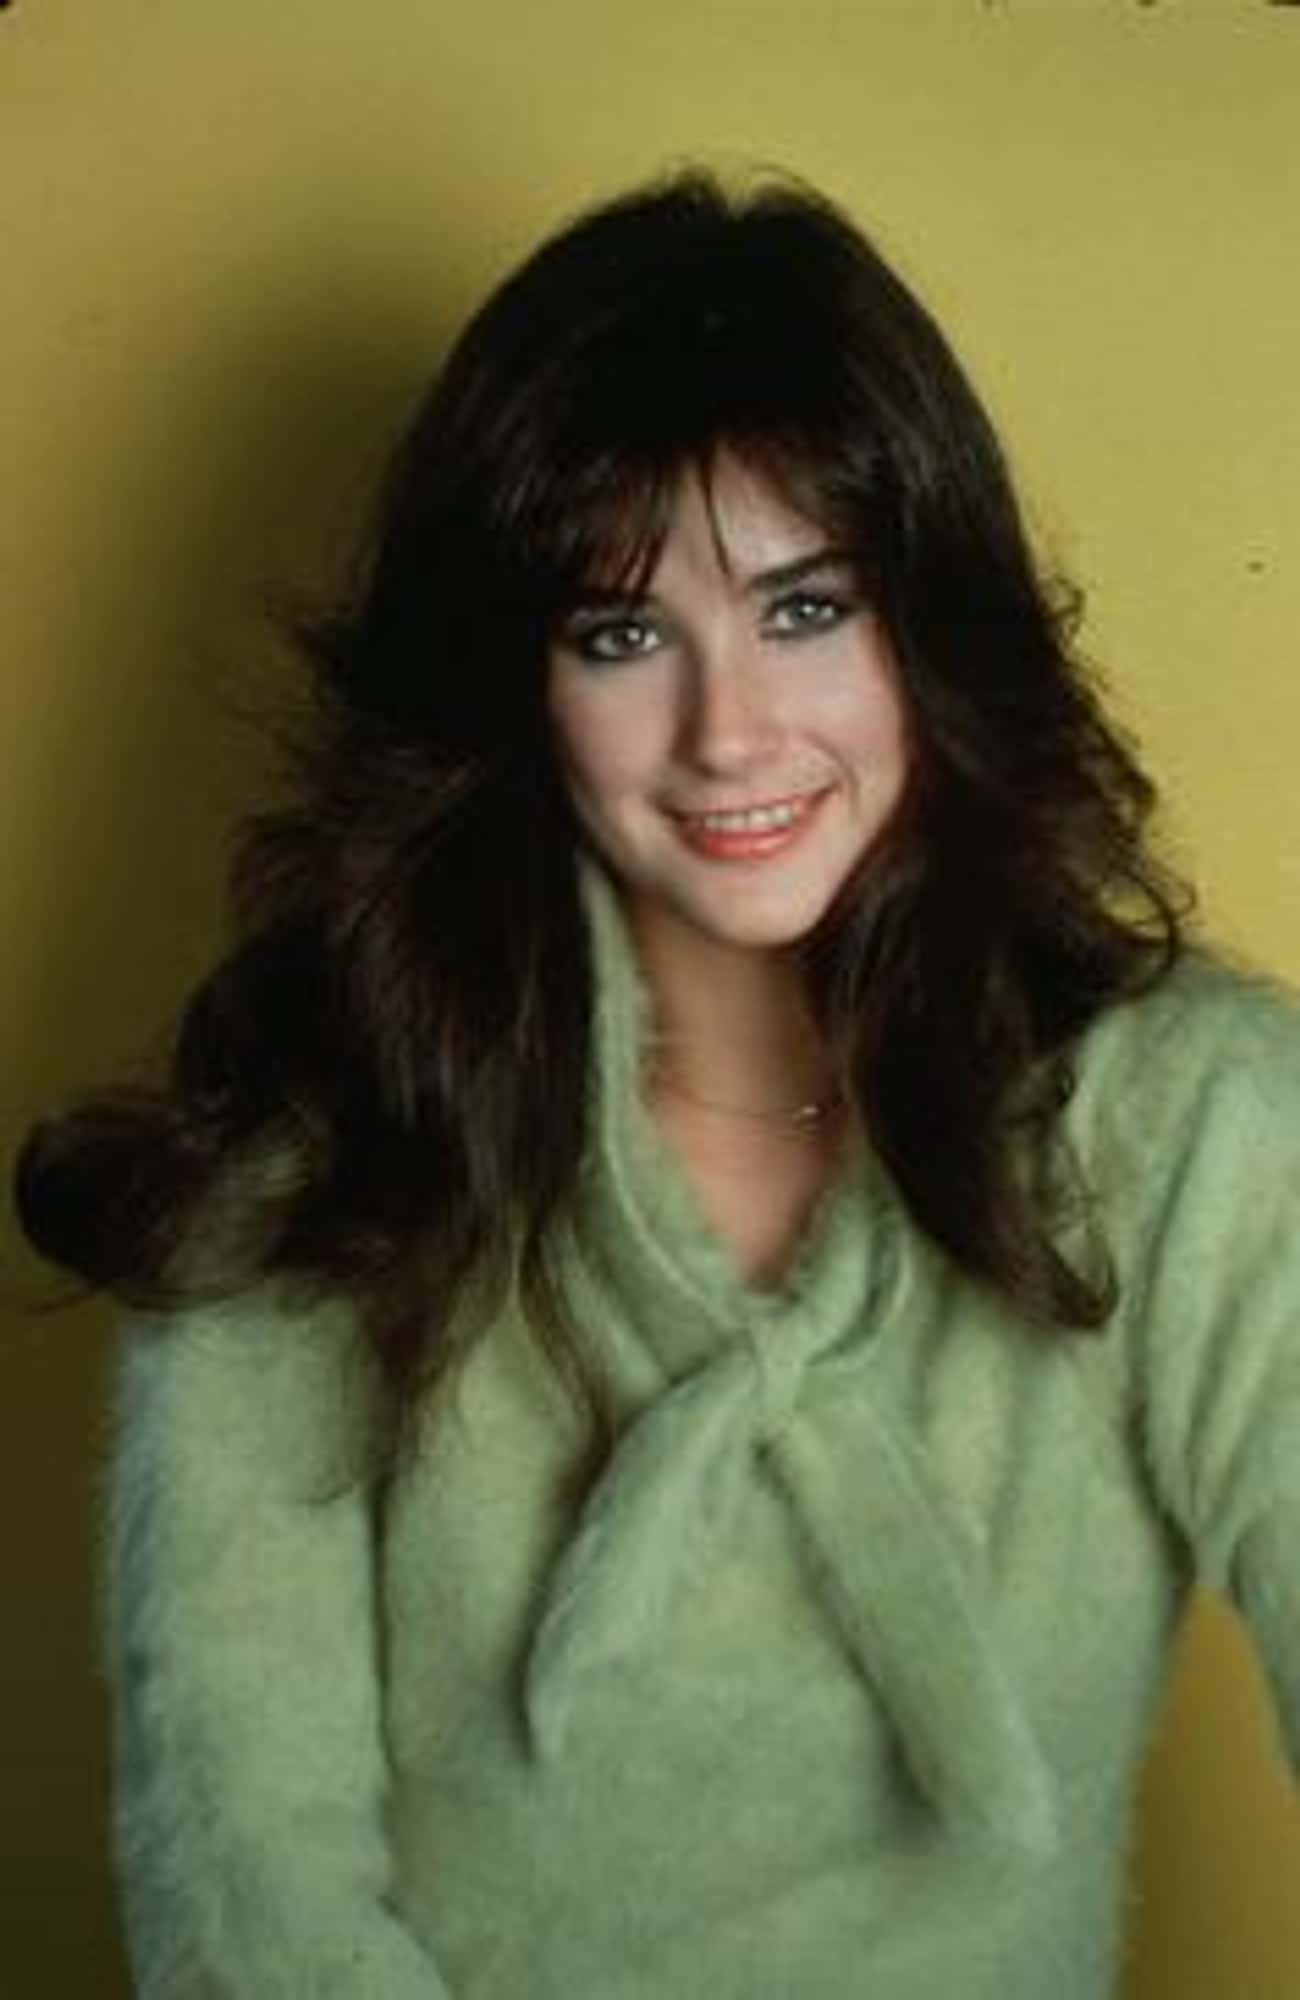 A Young Demi Moore In A Green  is listed (or ranked) 2 on the list 25 Pictures of Young Demi Moore